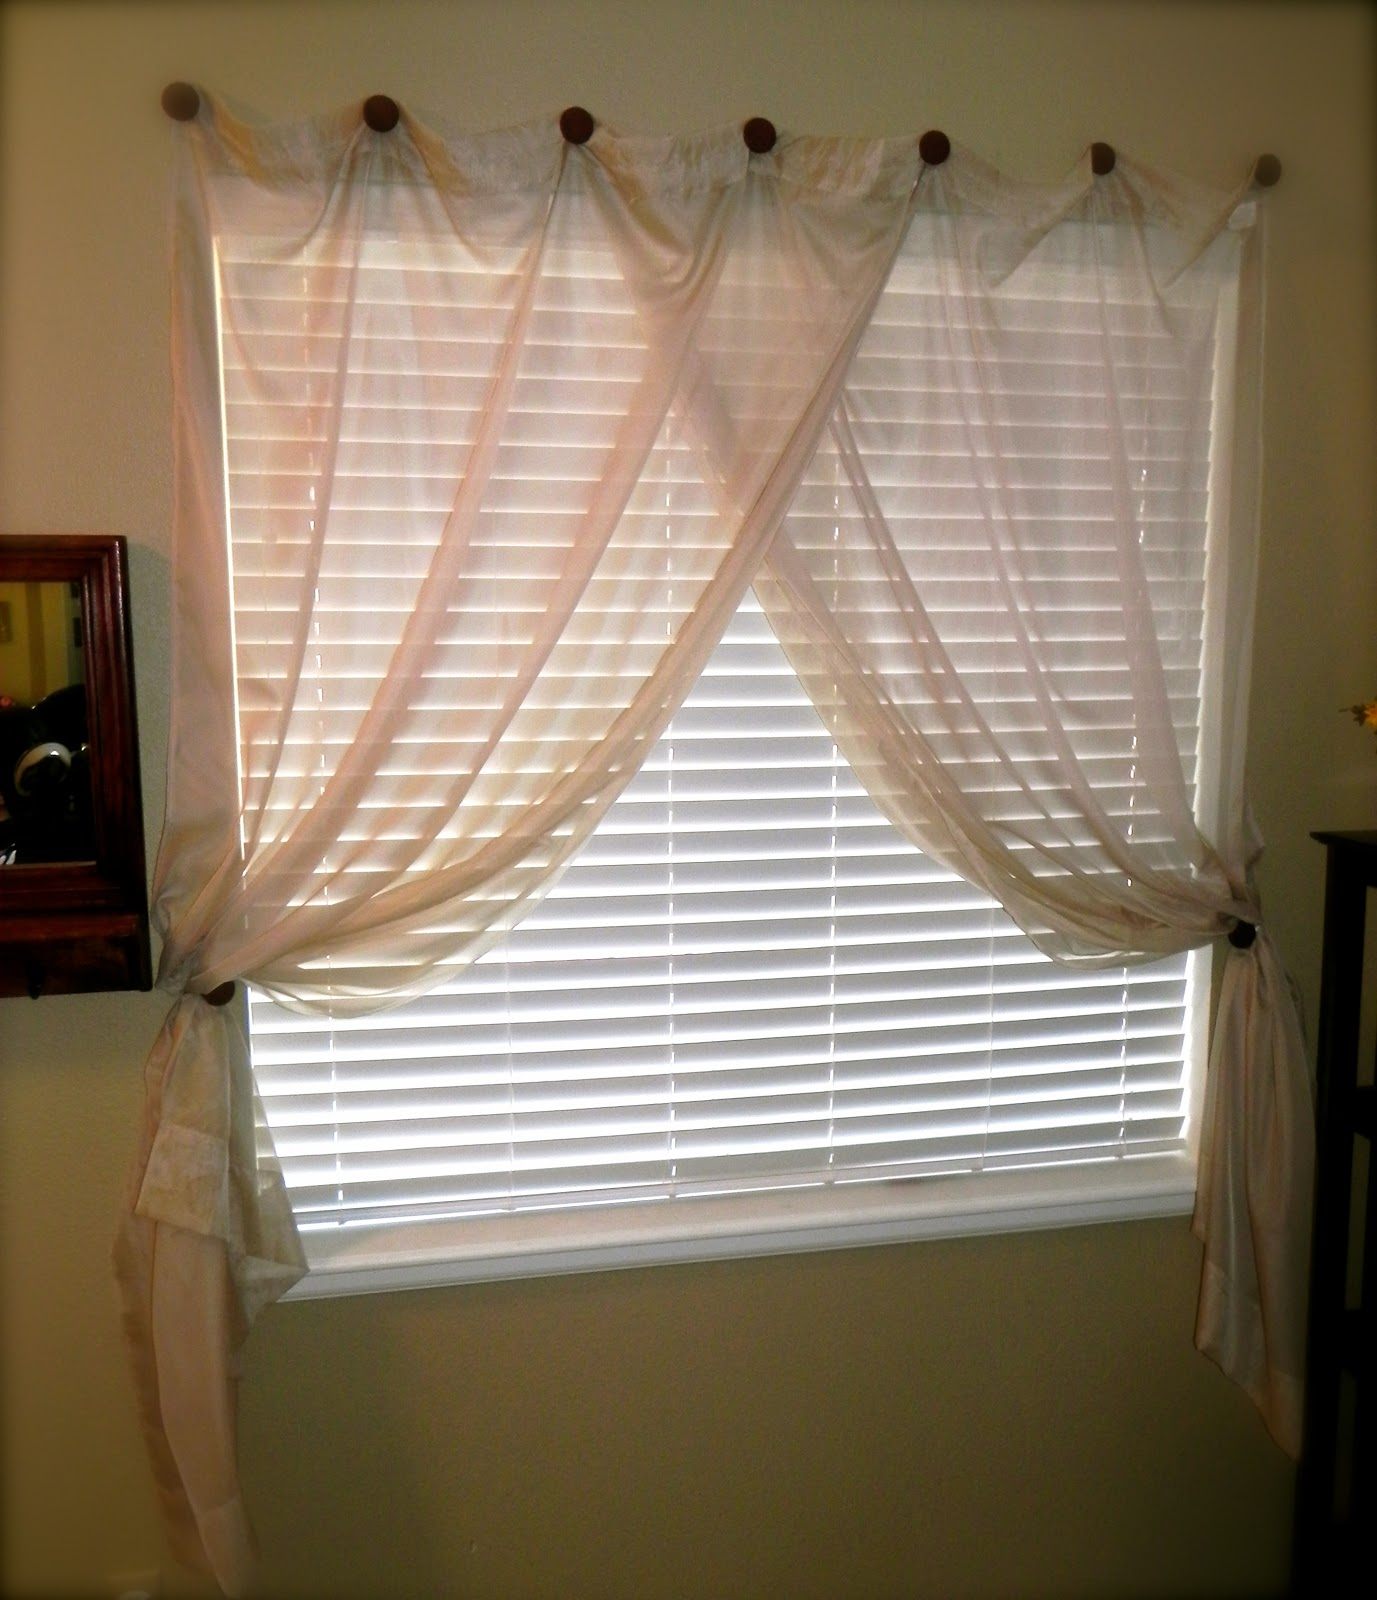 Ideas For Hanging Curtains Without Rods French Rods for Curtains